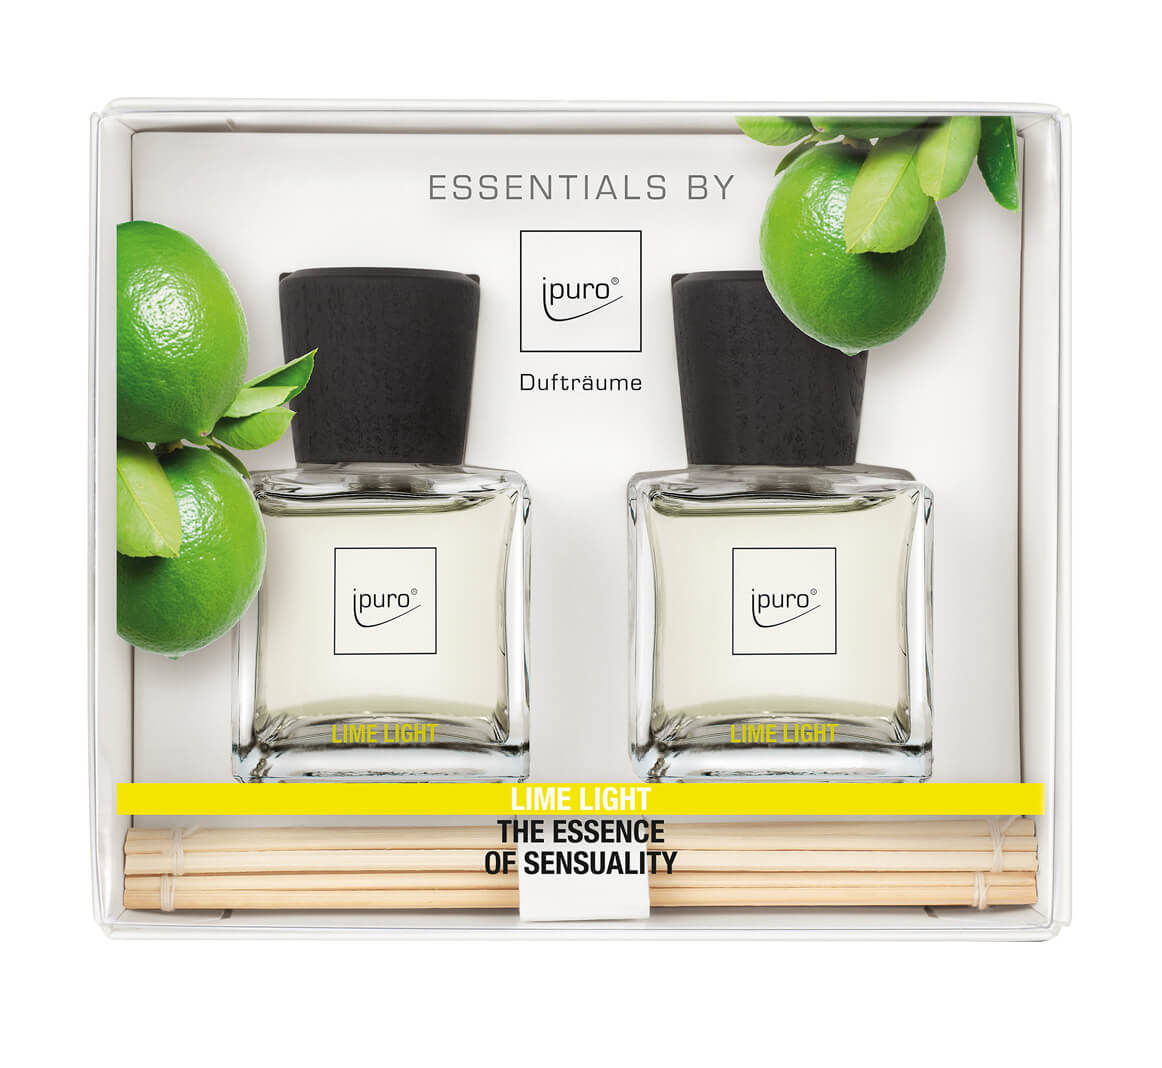 ESSENTIAL by ipuro lime light 2x 50mlml Lufterfrischer